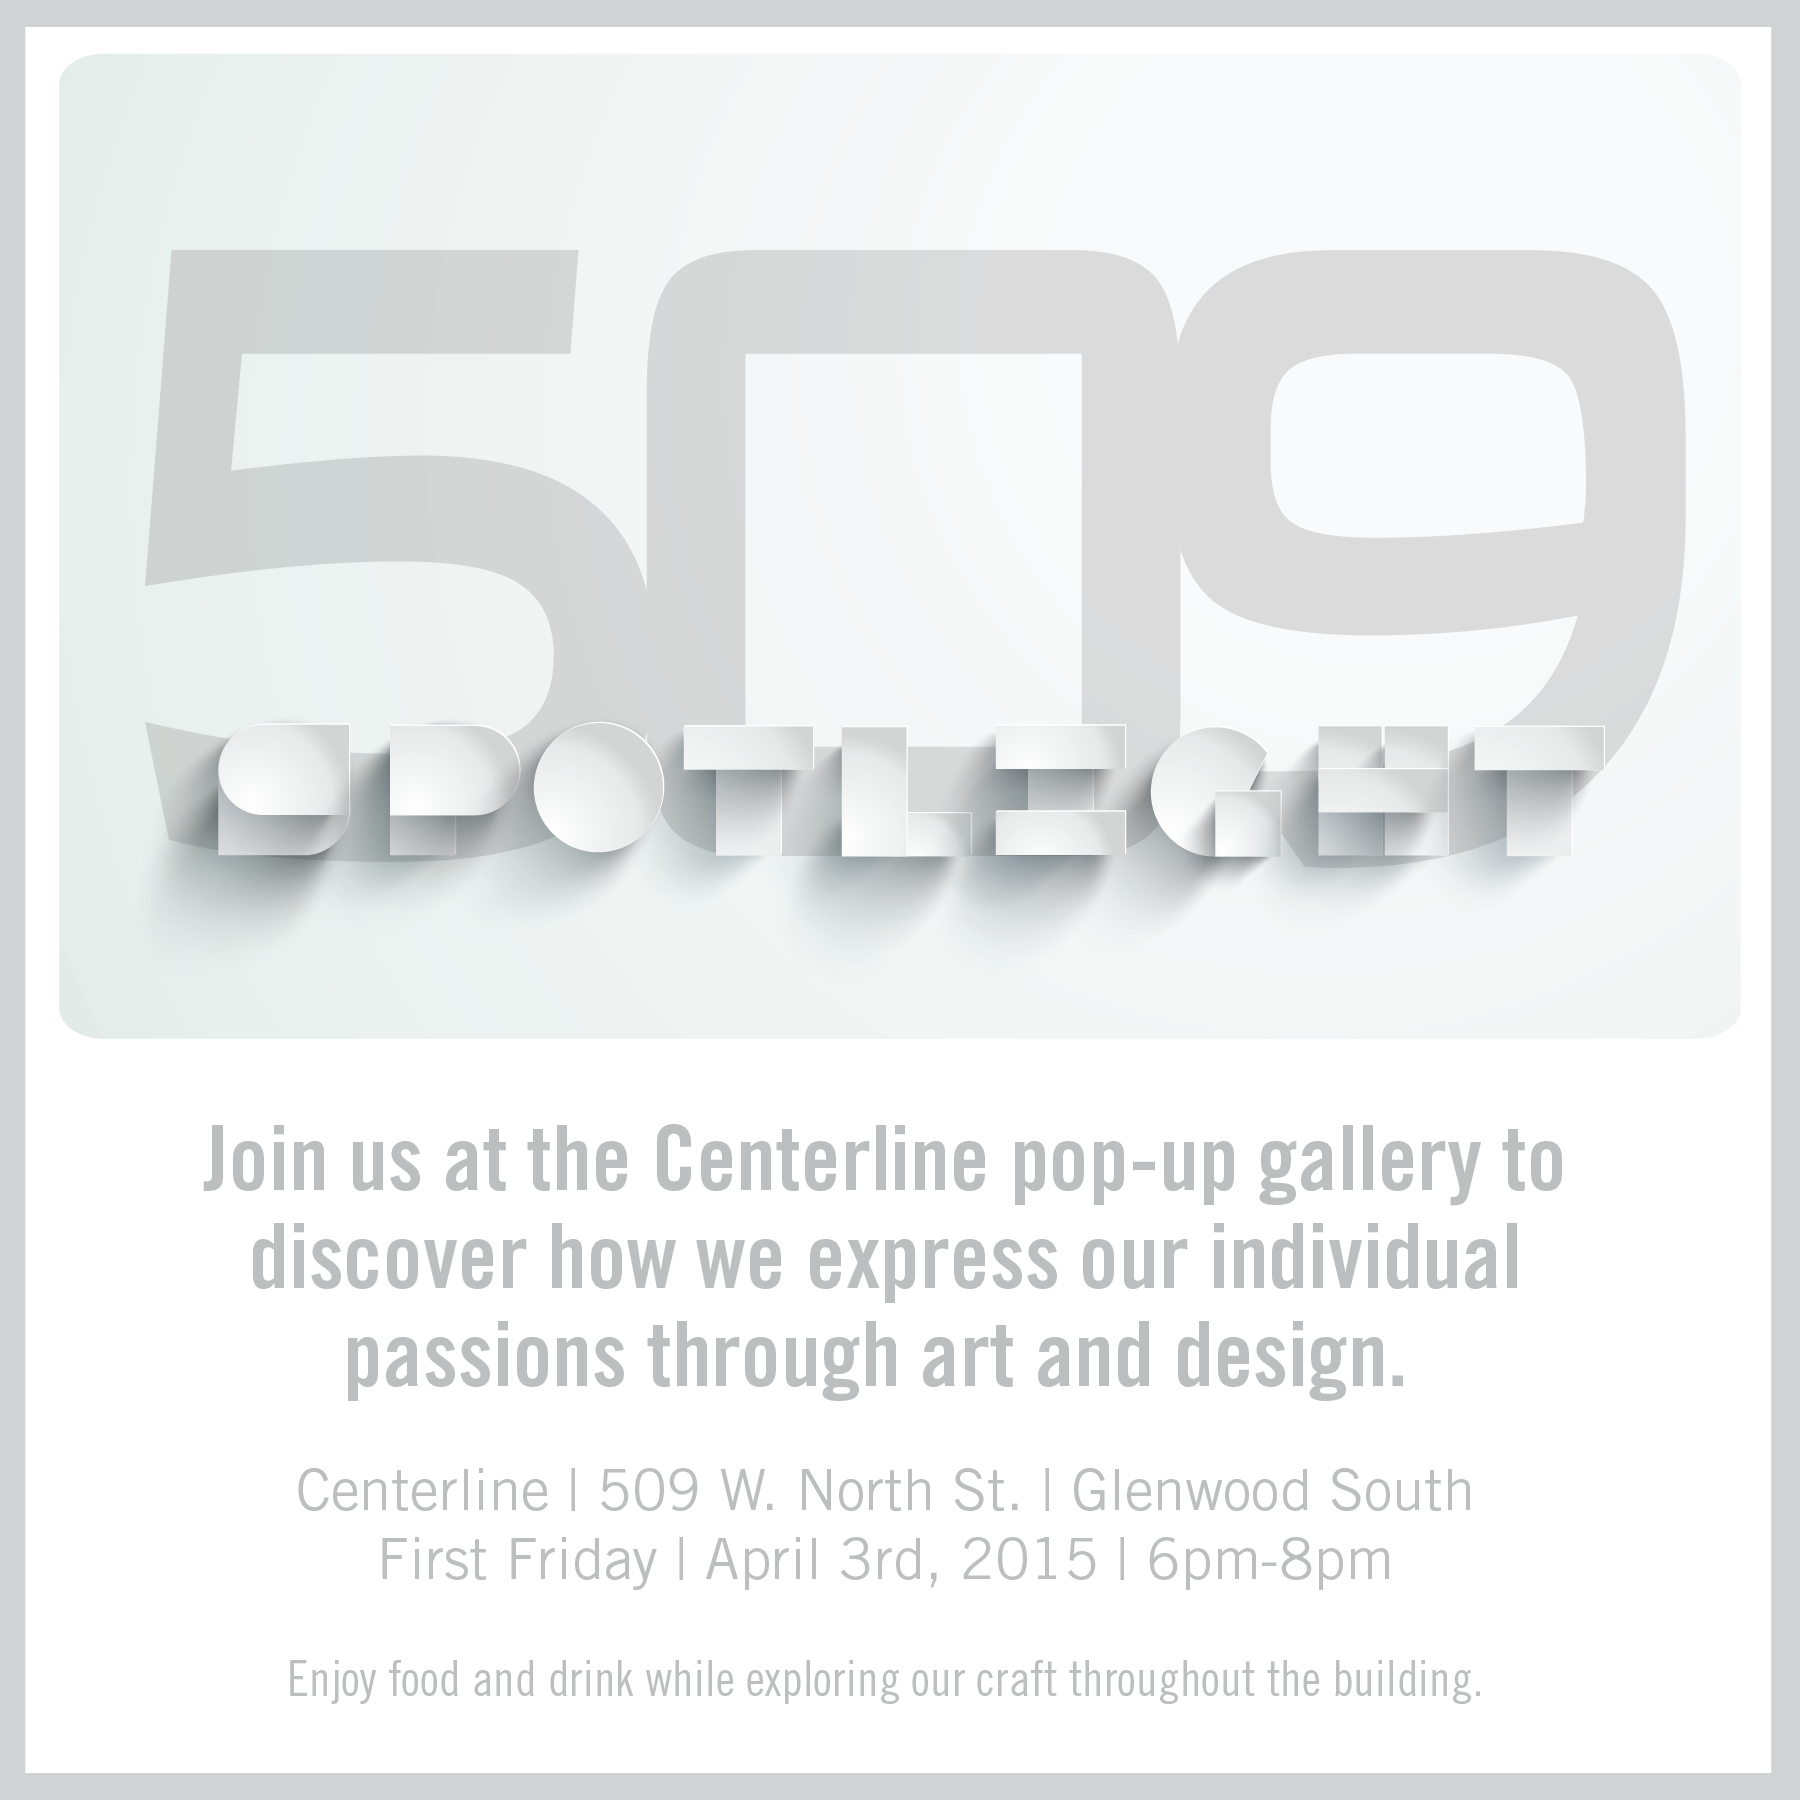 Spotlight 509 – A pop-up art gallery featuring Centerliners' own passion projects